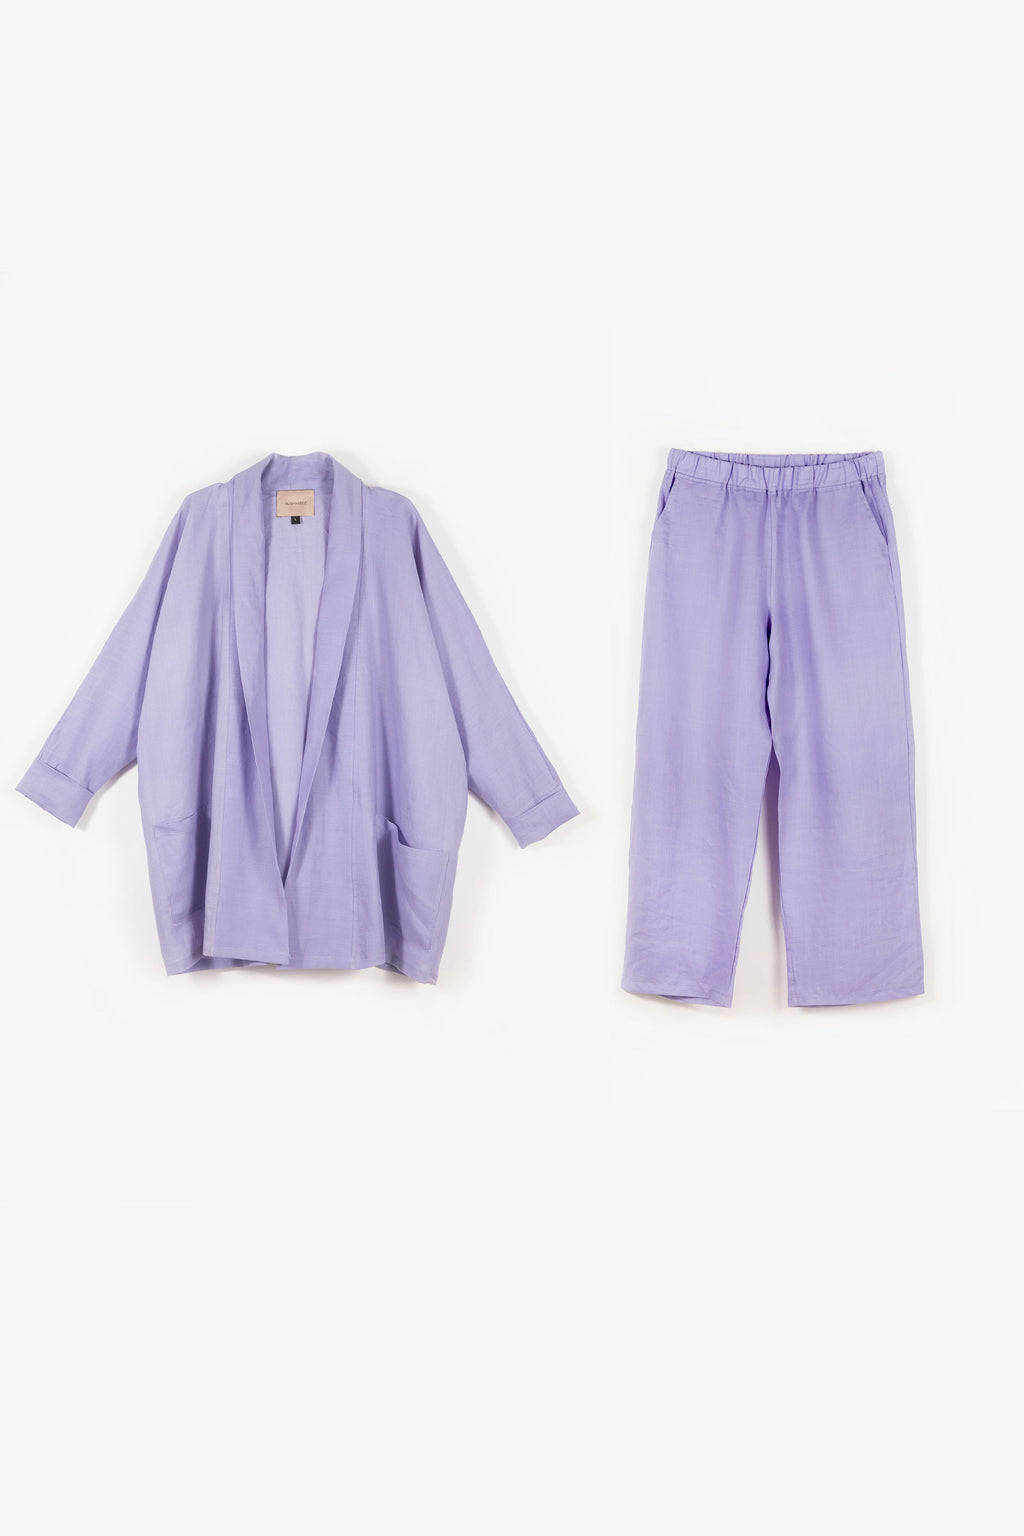 Linen Ruby Coord Set - Lilac